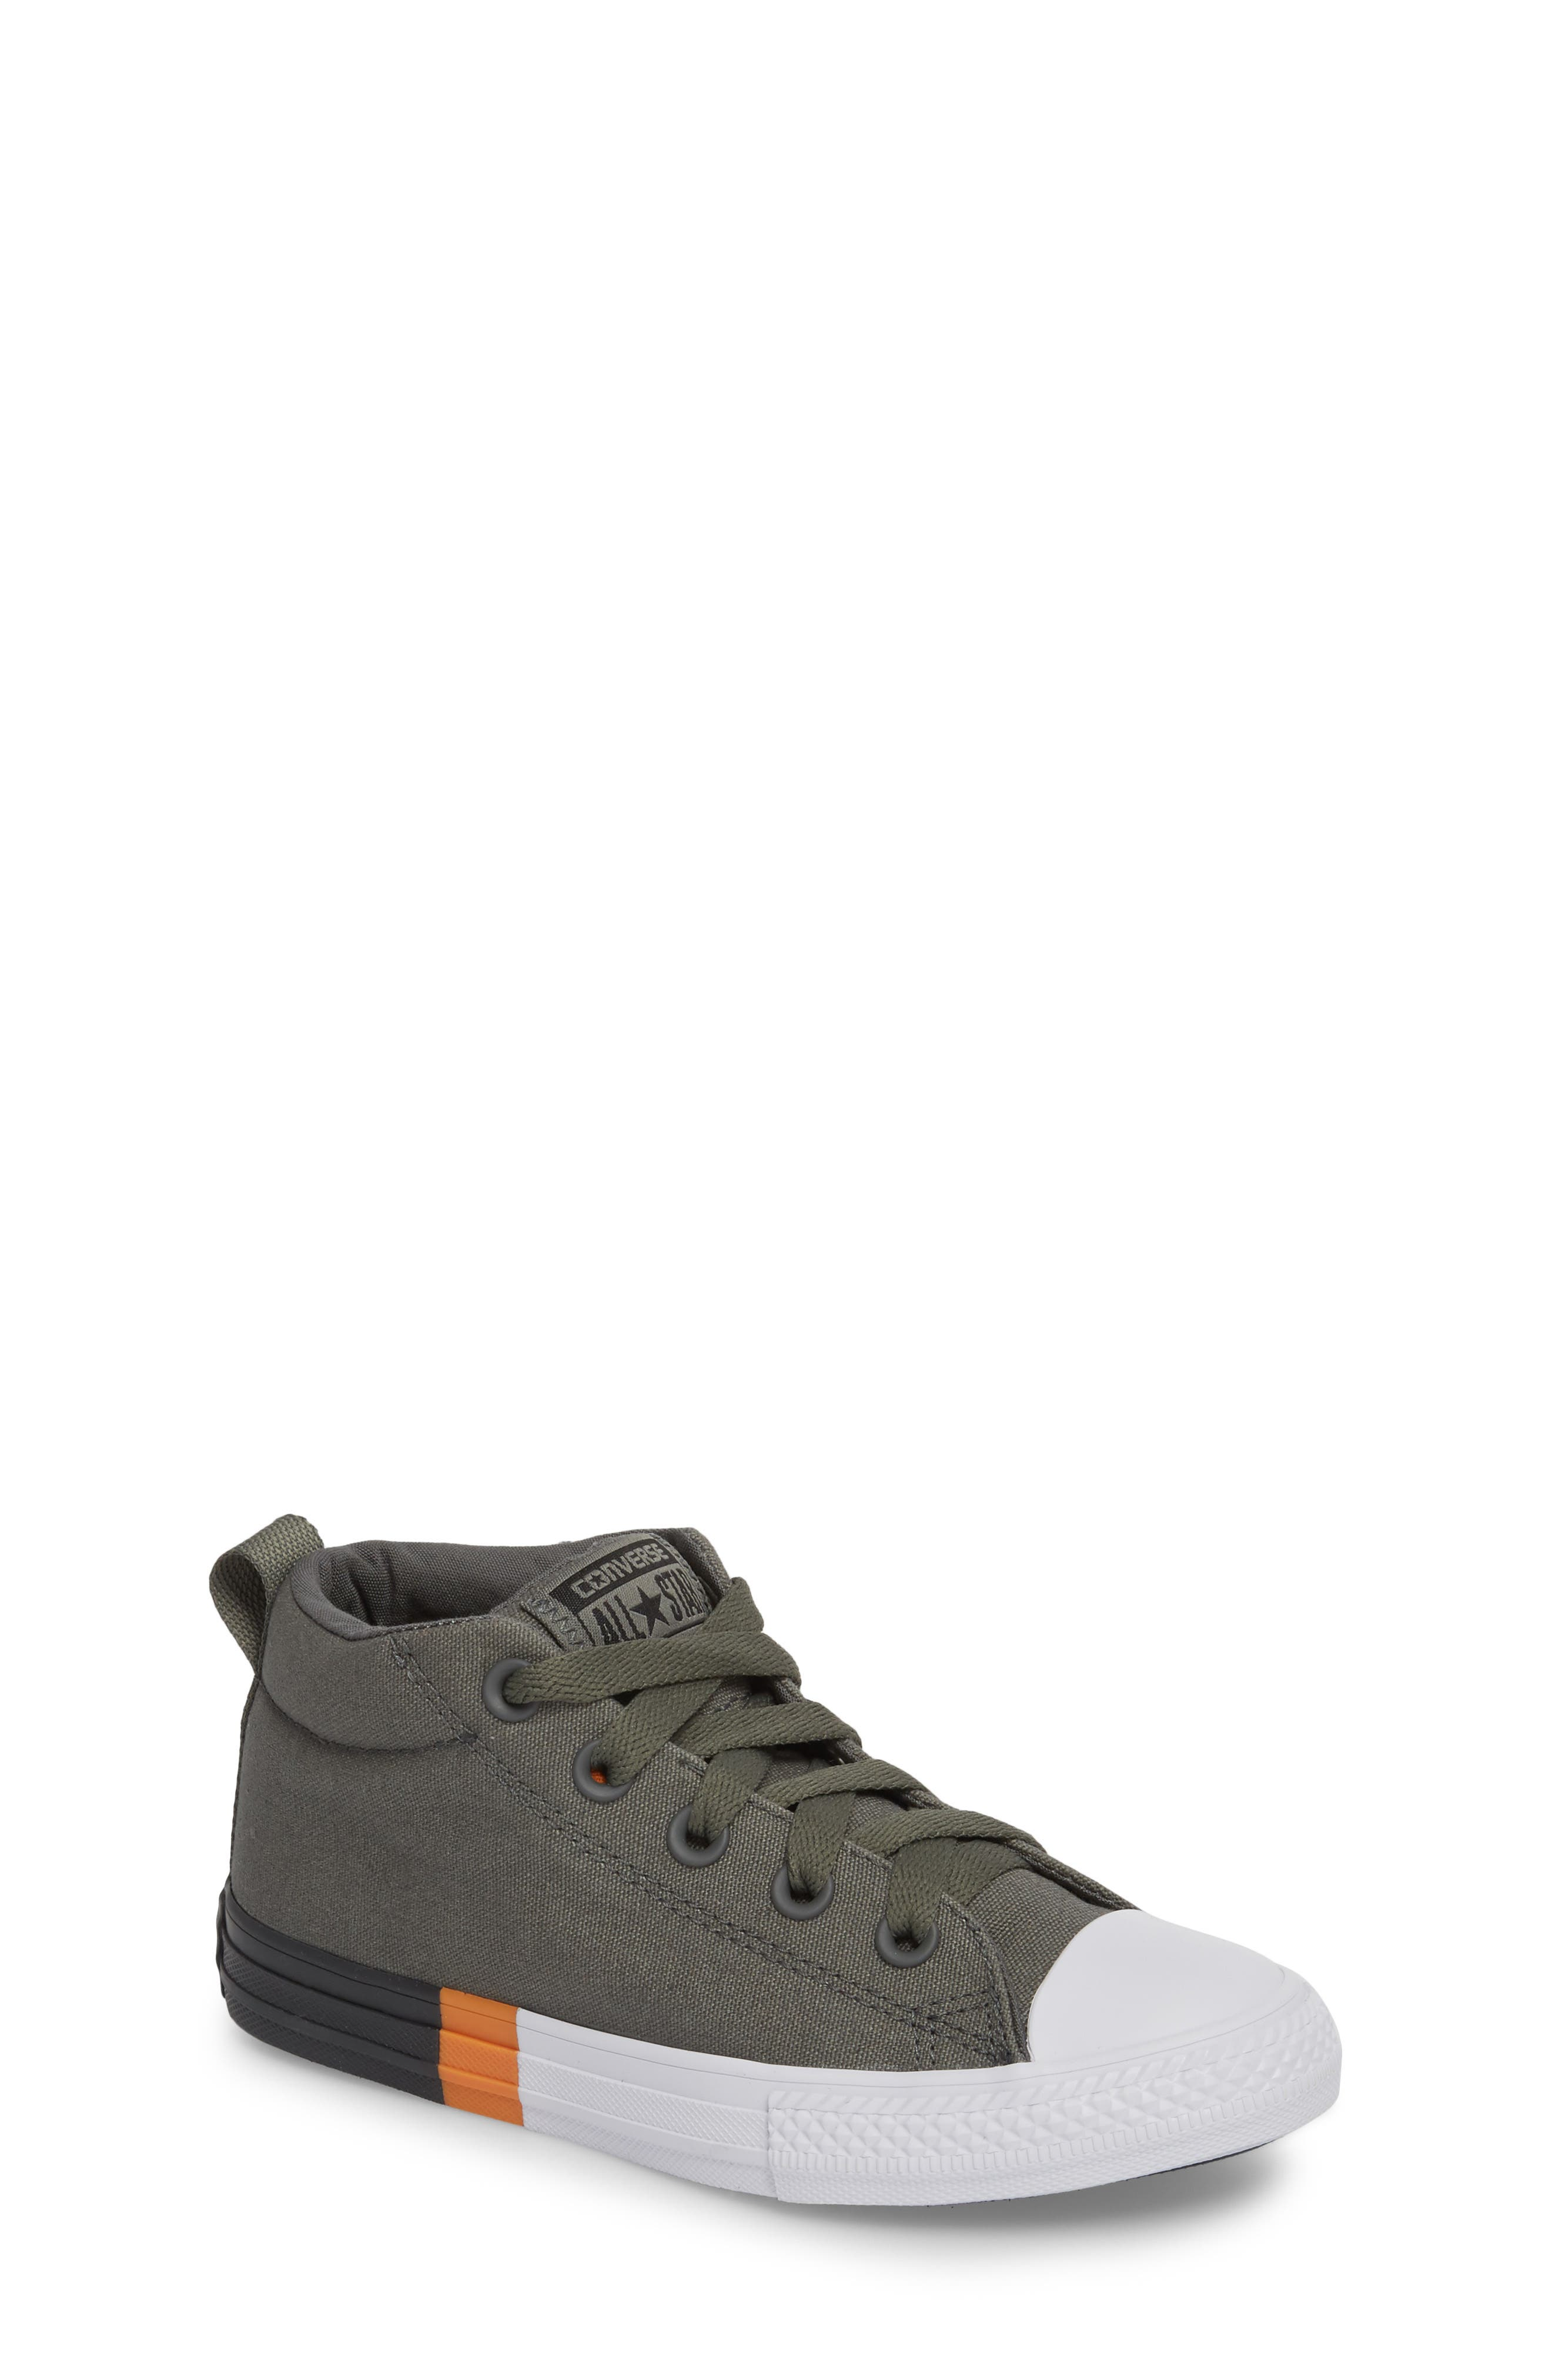 Chuck Taylor<sup>®</sup> All Star<sup>®</sup> Street Colorblock Mid Top Sneaker,                         Main,                         color, River Rock